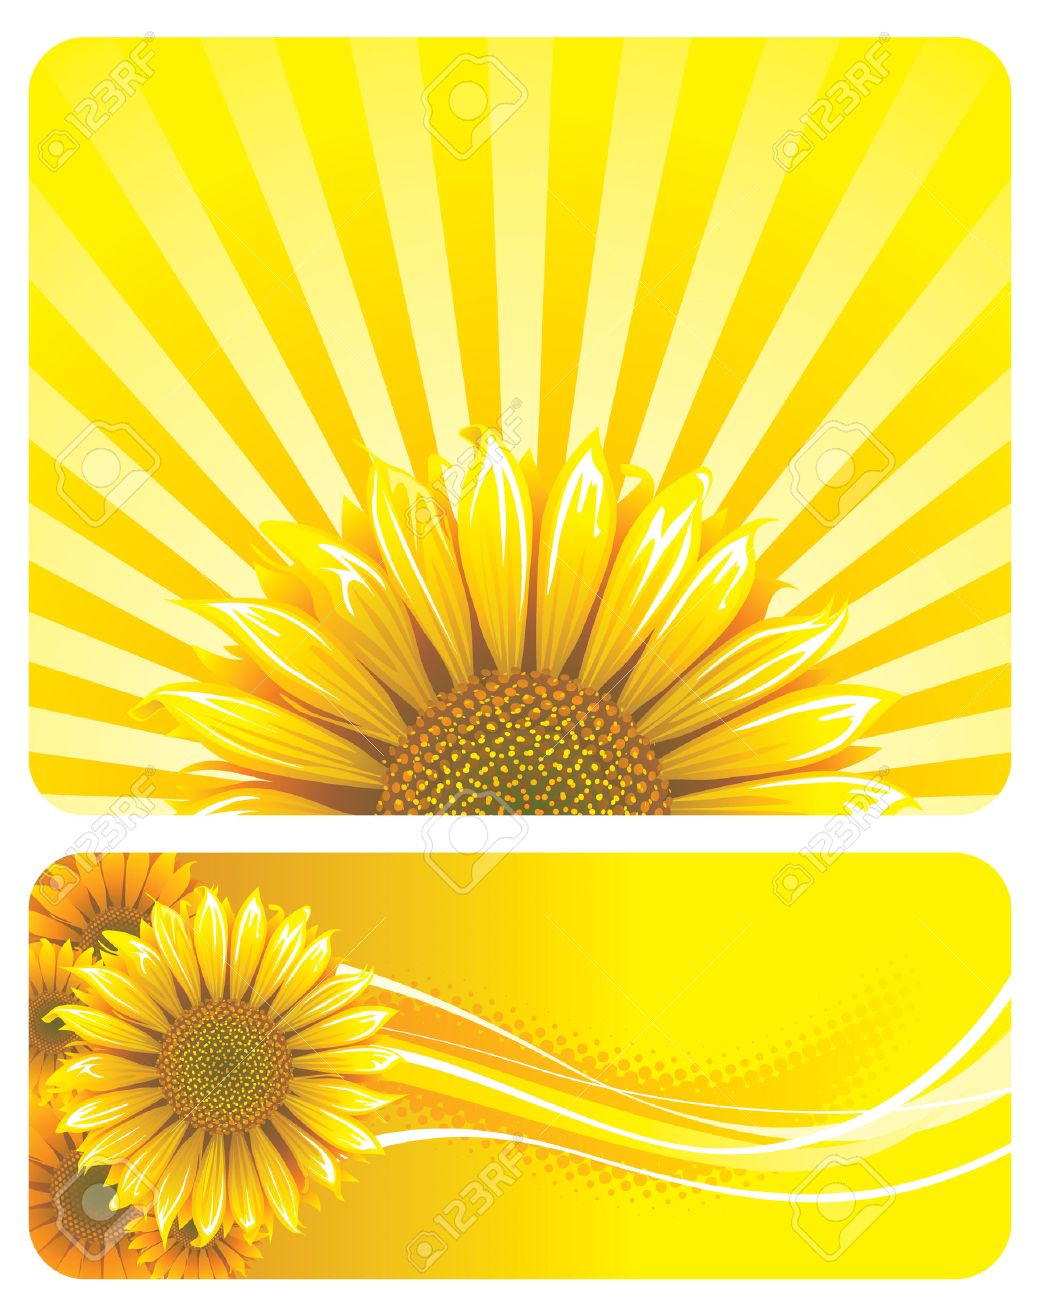 Sunflower and yellow background design. Vector layered. Stock Vector - 4603535